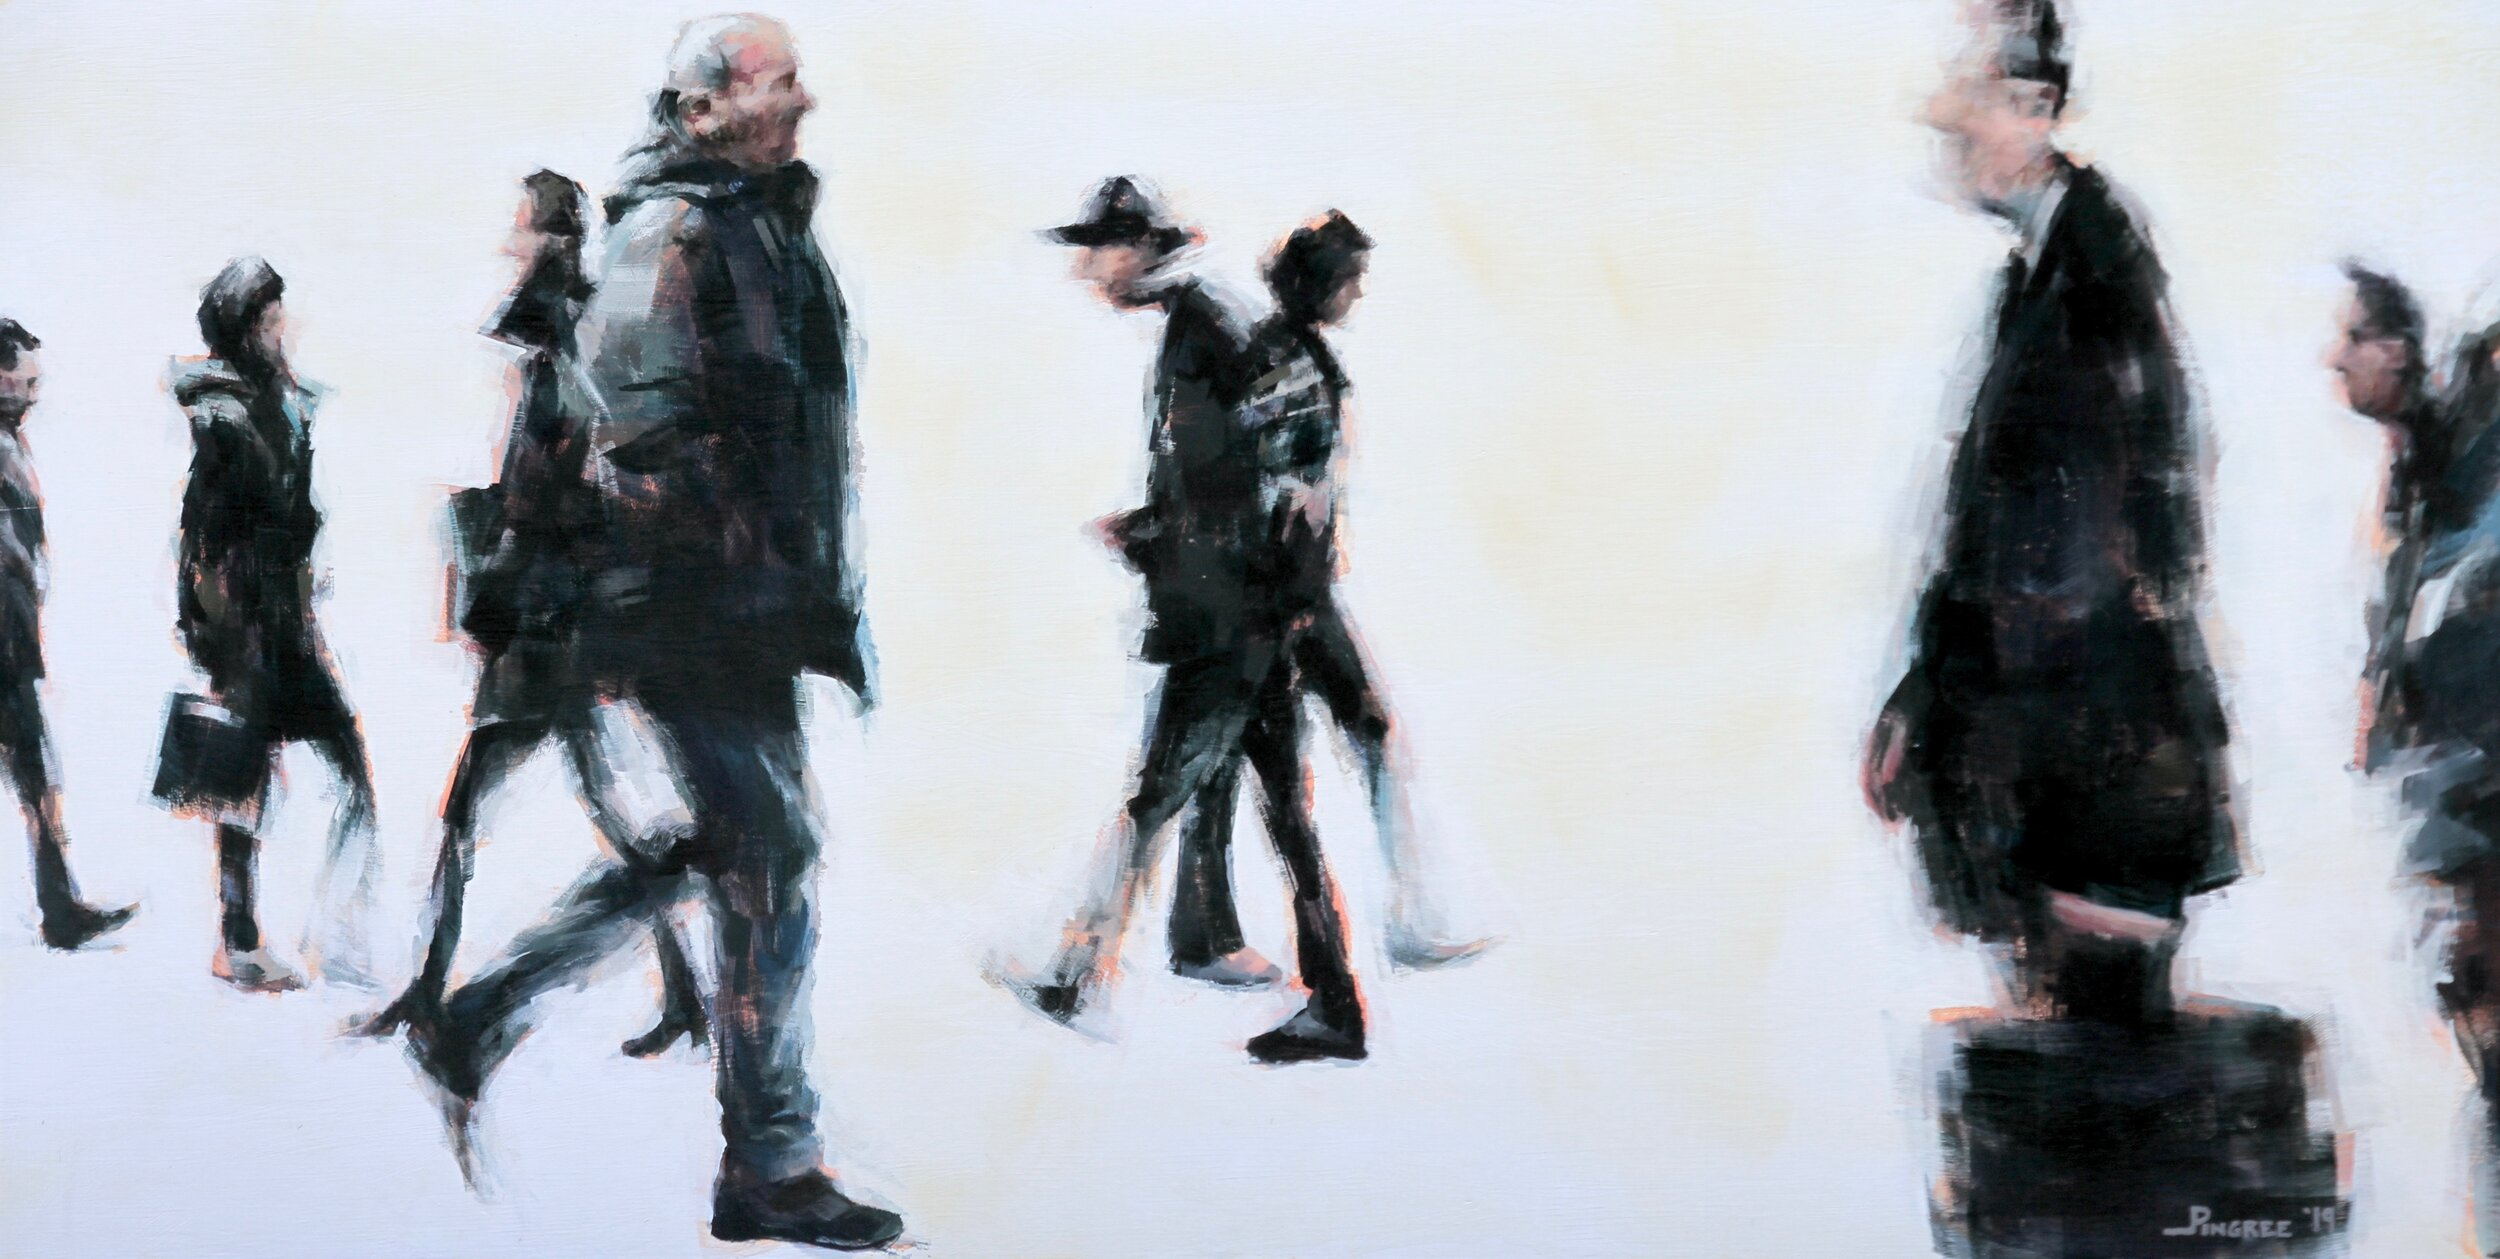 """Nine Commuters - by Jay Pingree, Maplewood[acrylic paint]The artist says: """"I work from my own long exposure photographs. I'm fascinated by the distortions and compressed, simplified forms that appear in these blurred images, almost as if painting with the camera. These photos inform my paintings; I use the abstracted images to encourage my own ever-evolving freedom with the paint.""""Jay Pingree was born and raised in Michigan, studied at UNC Asheville, spent ten years in New York, and has been in Maplewood since 2010. He is currently represented by the Nordic Art Agency in Malmö, Sweden and The Soden Collection in Shewsbury, England. His upcoming solo show with the Nordic Art Agency will be in April of 2020.pingreeart@hotmail.com; Instagram @pingreeart"""